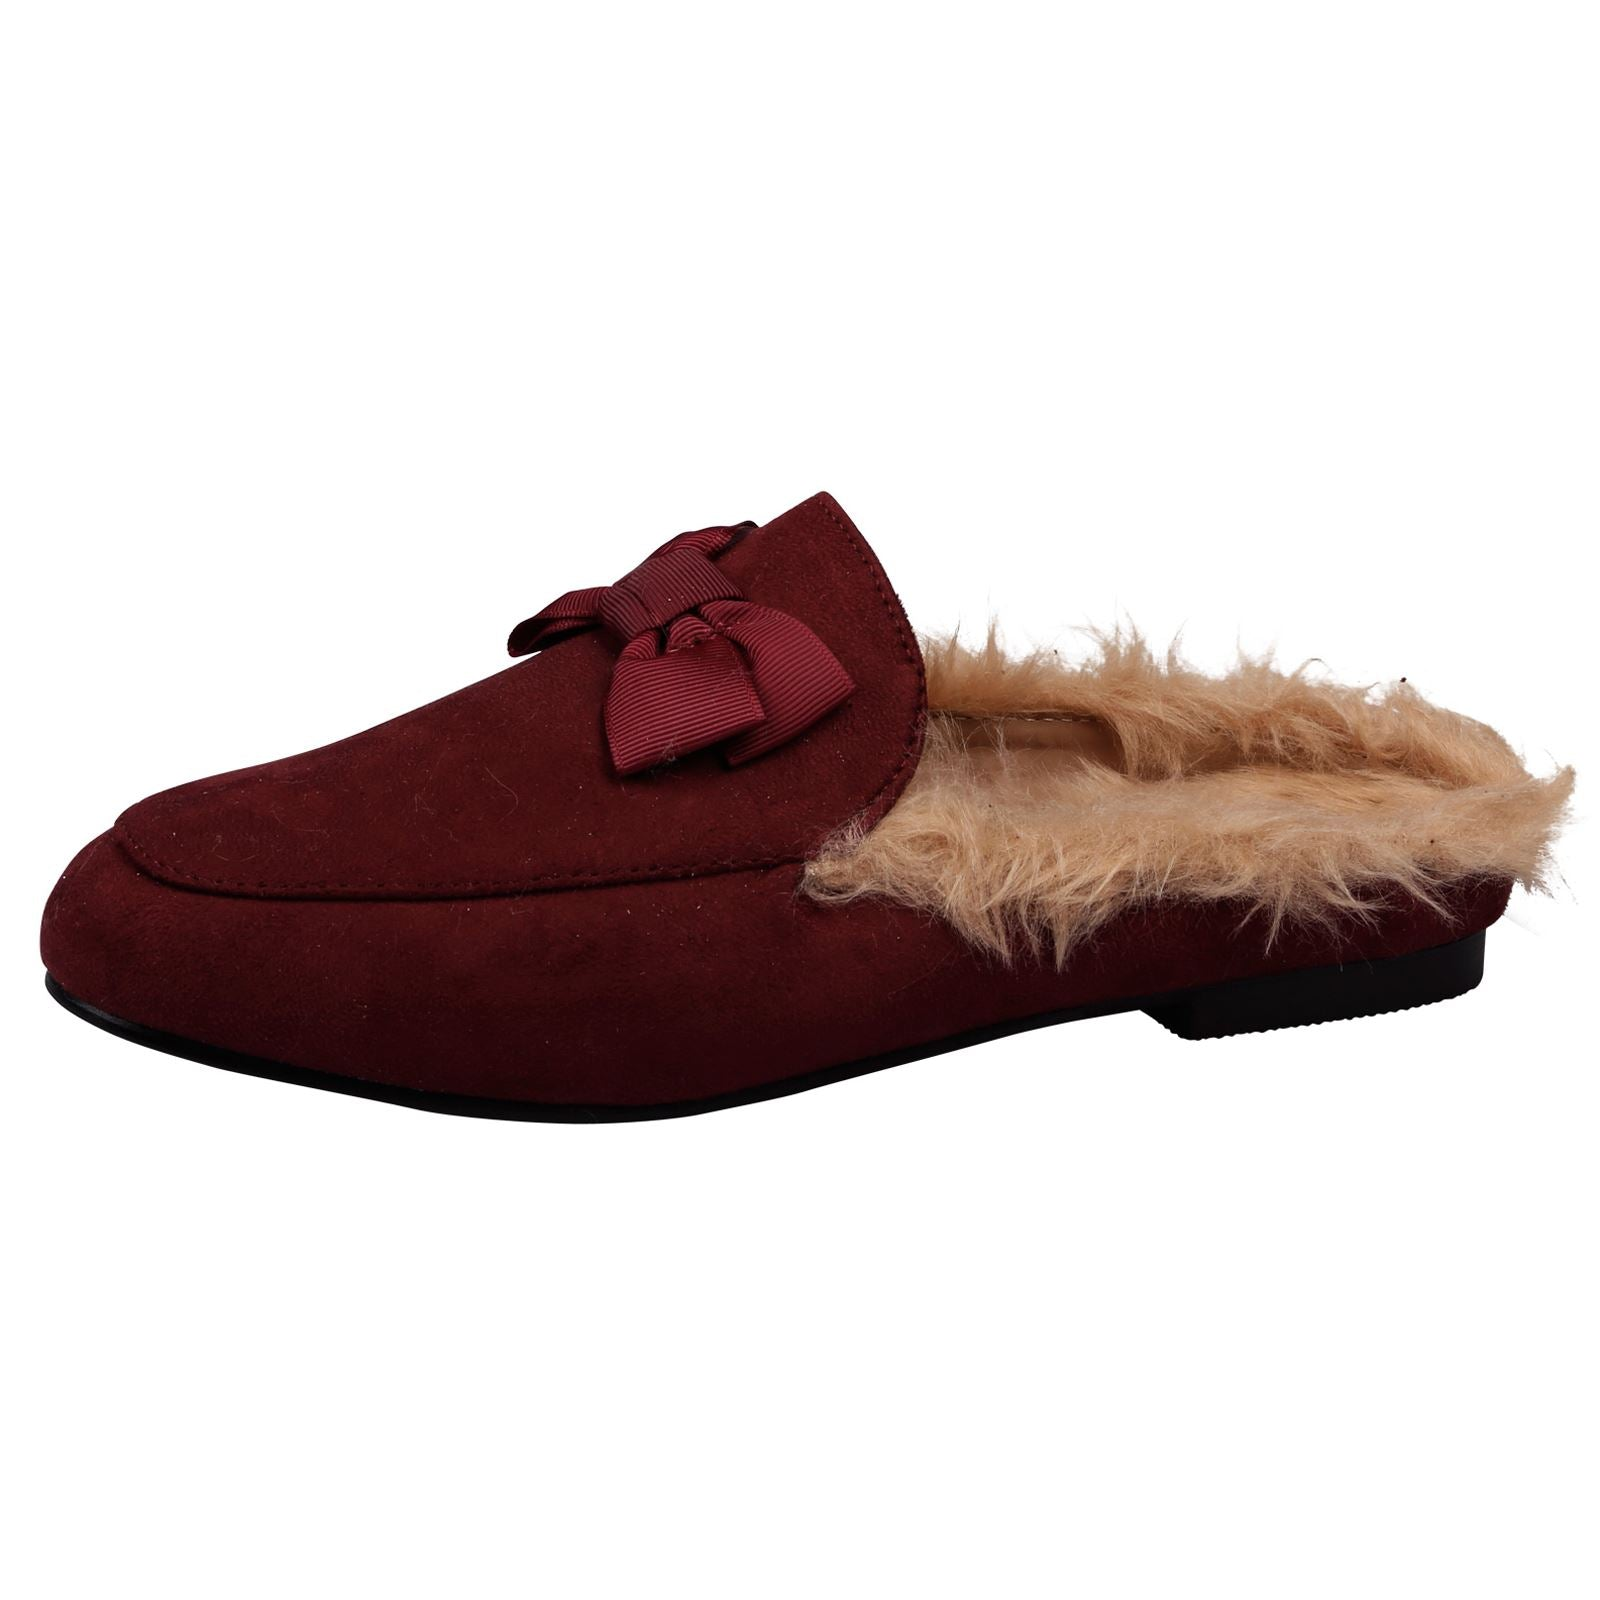 Dorothy Backless Loafers with Fur in Maroon Red Faux Suede